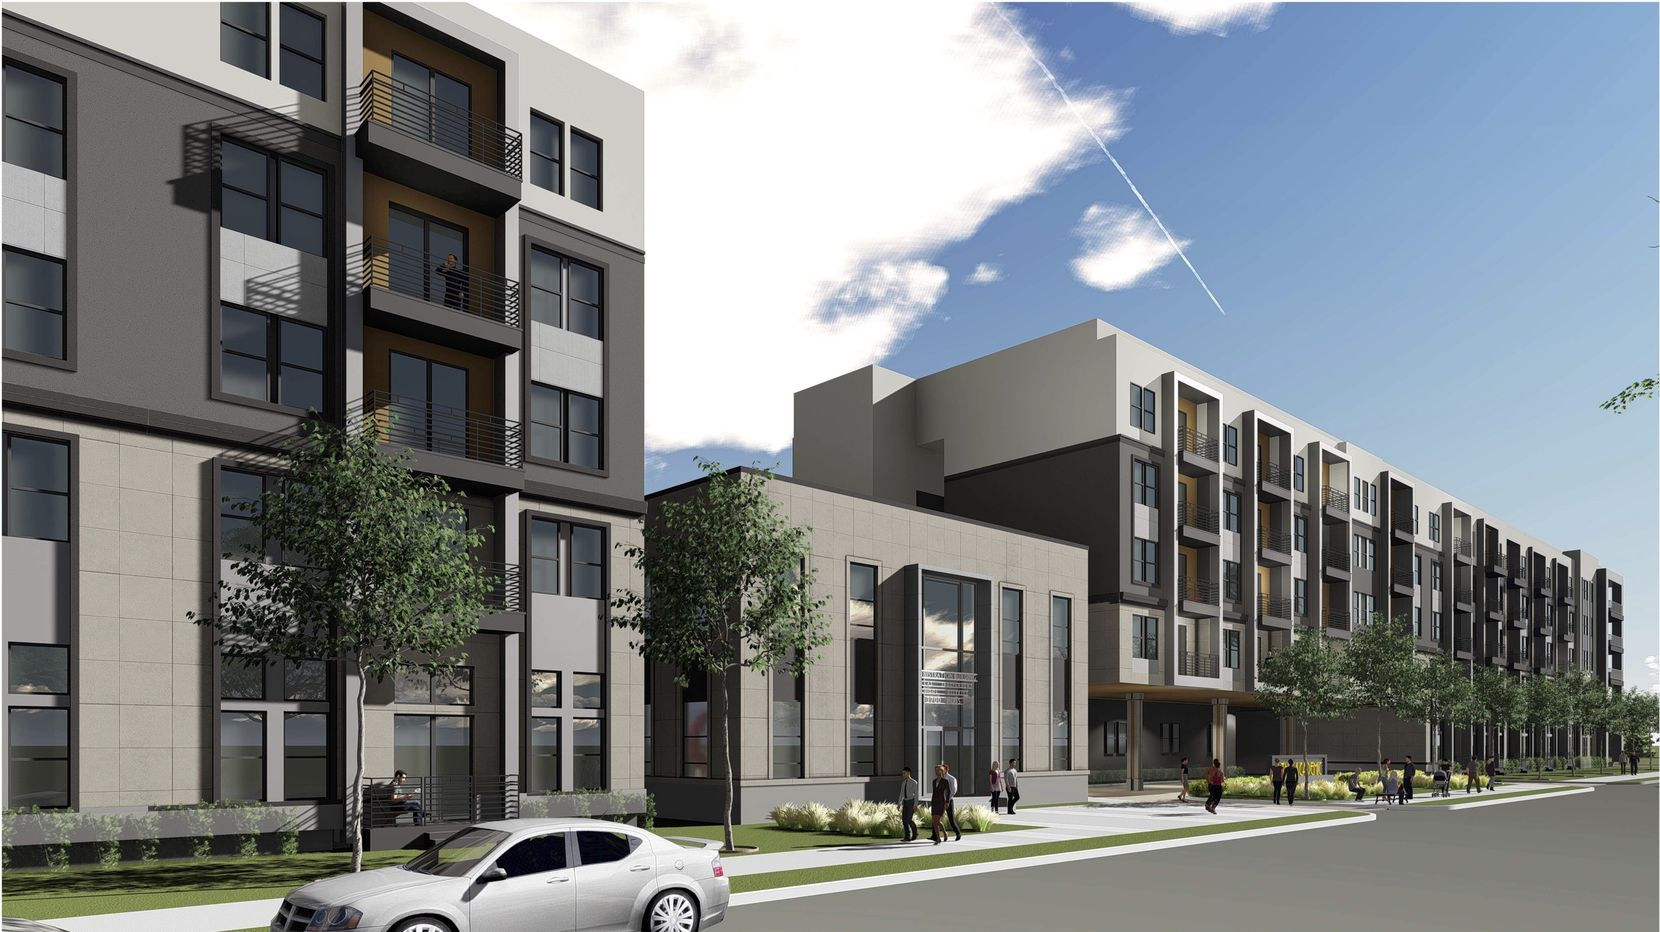 Leon Capital Group is building the apartment project just east of downtown Dallas.